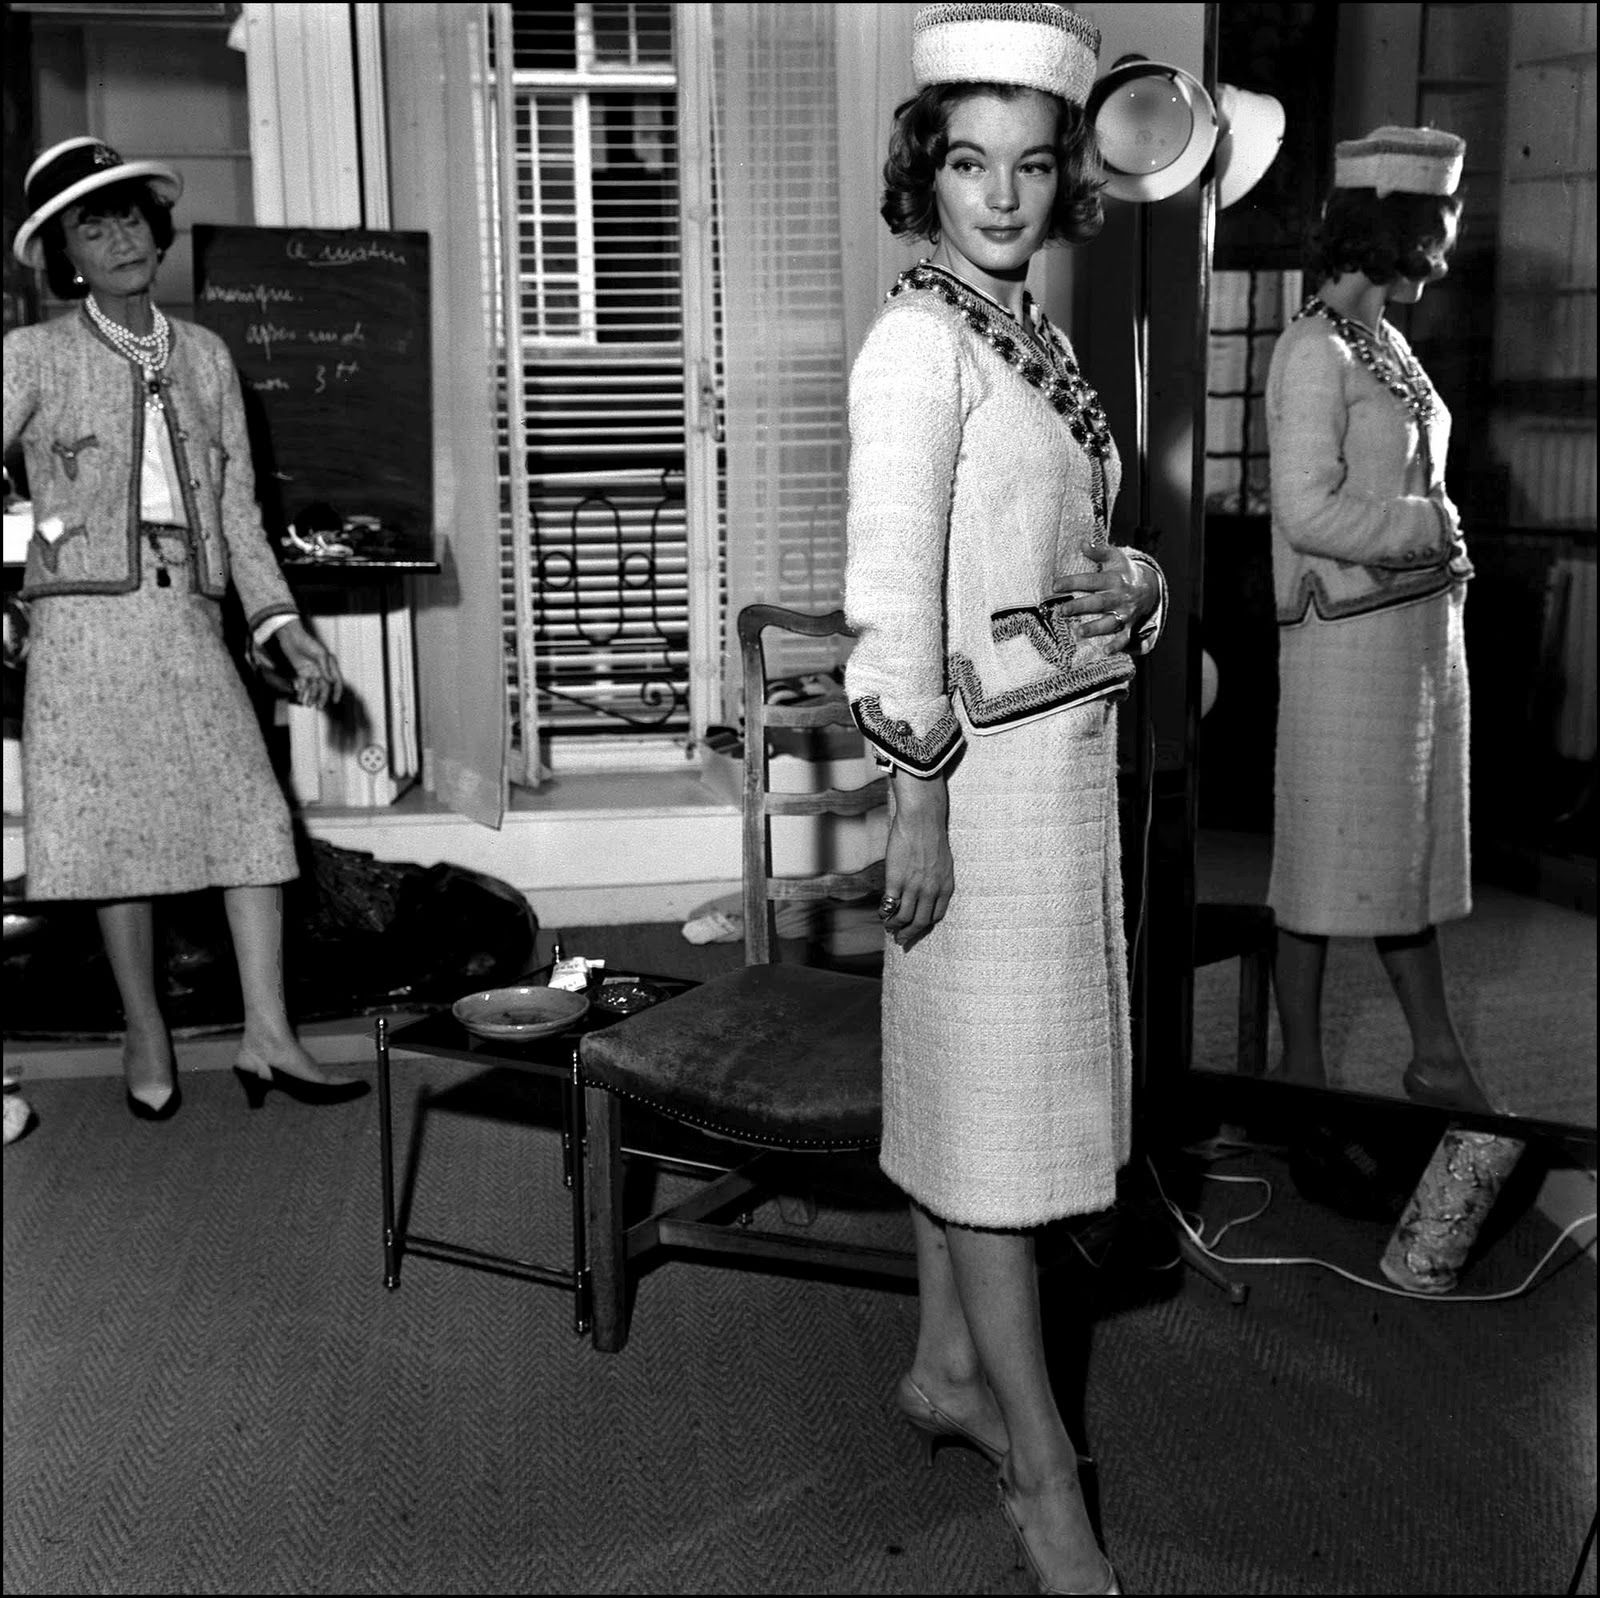 Arte Replay Romy Schneider Coco Chanel And Romy Schneider Fitting For Boccace 70 By Luchino